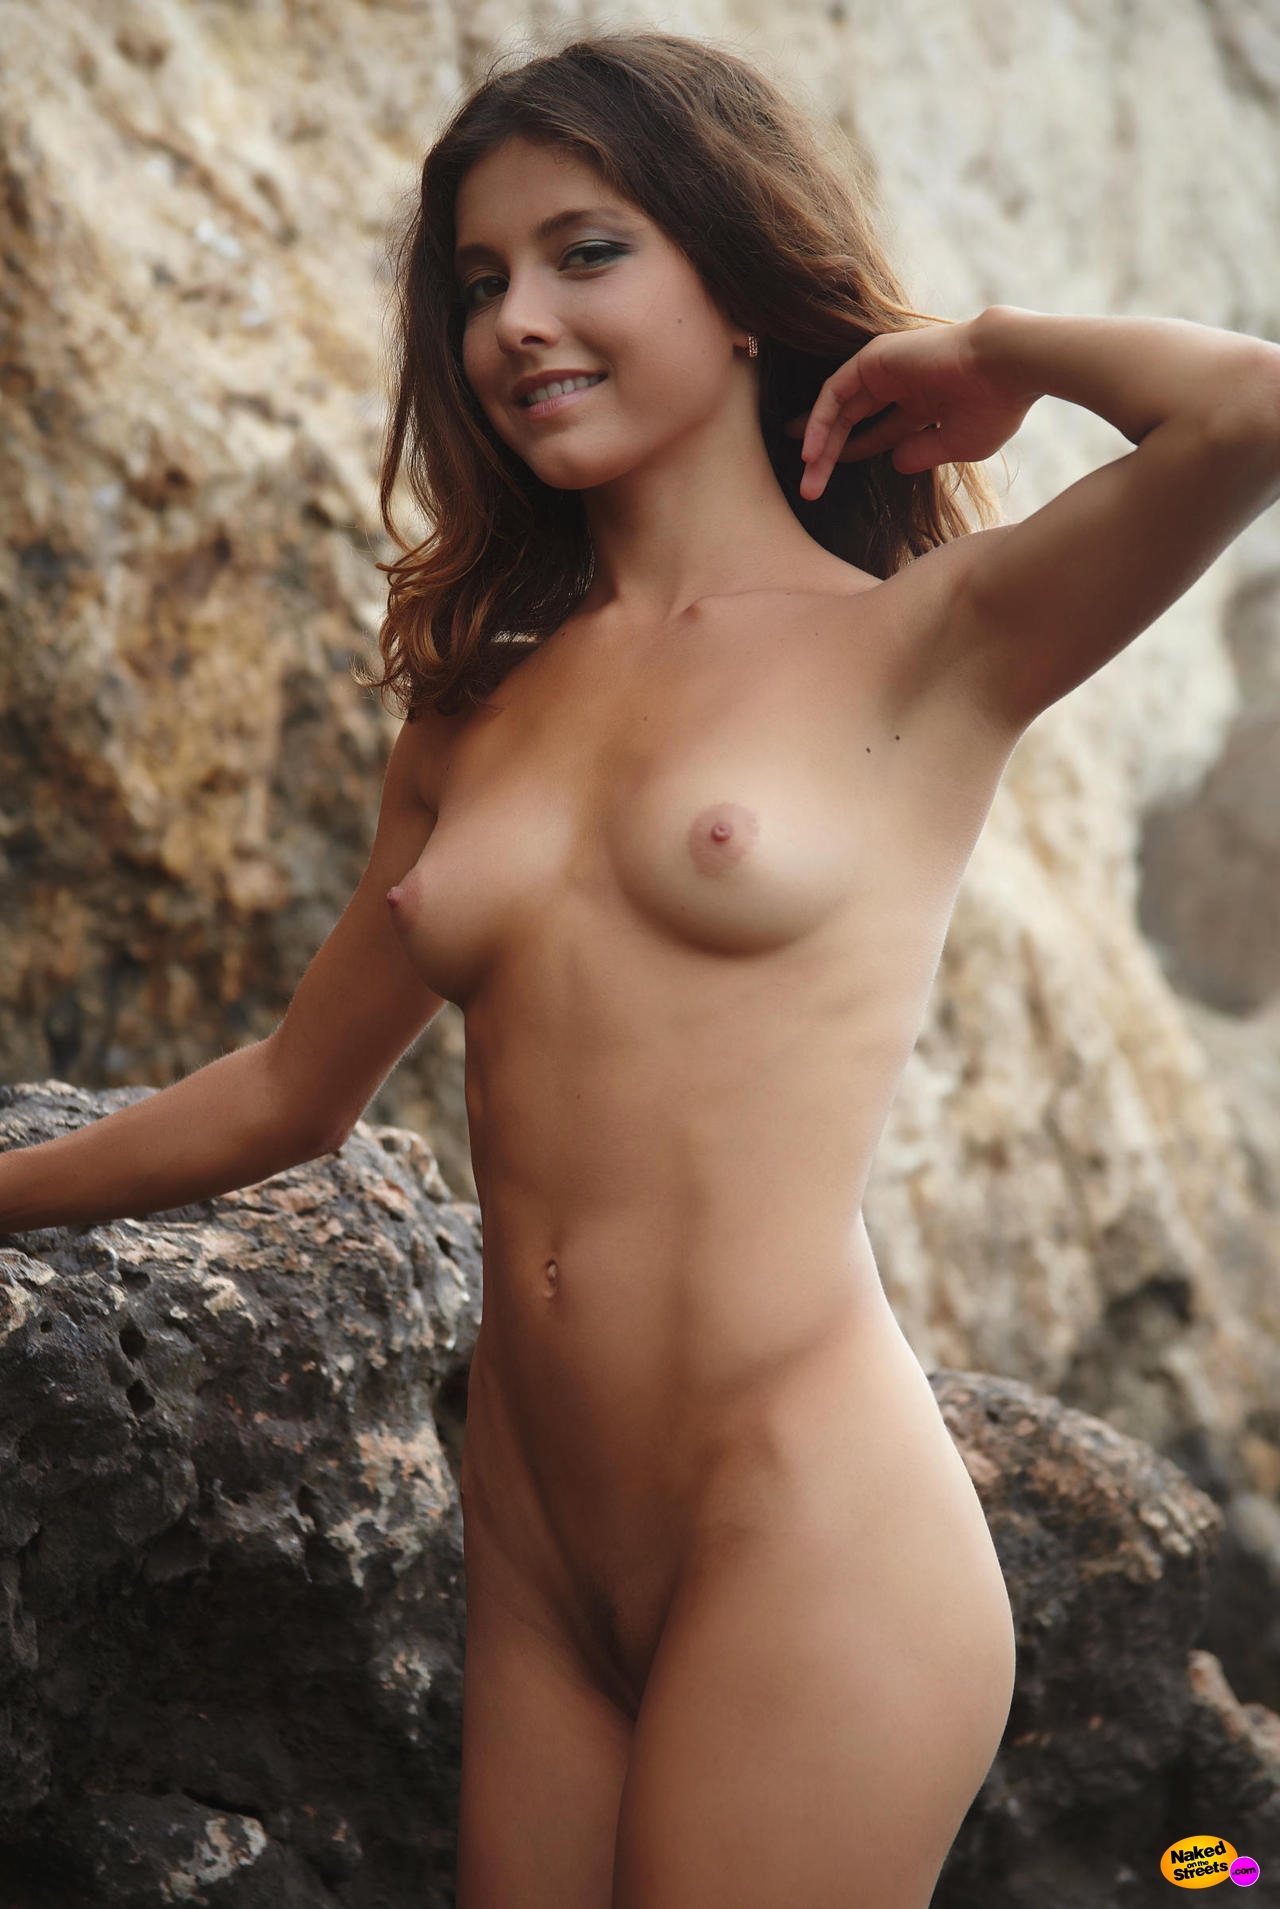 Sexy girl posing naked at the beach - NakedOnTheStreets.com